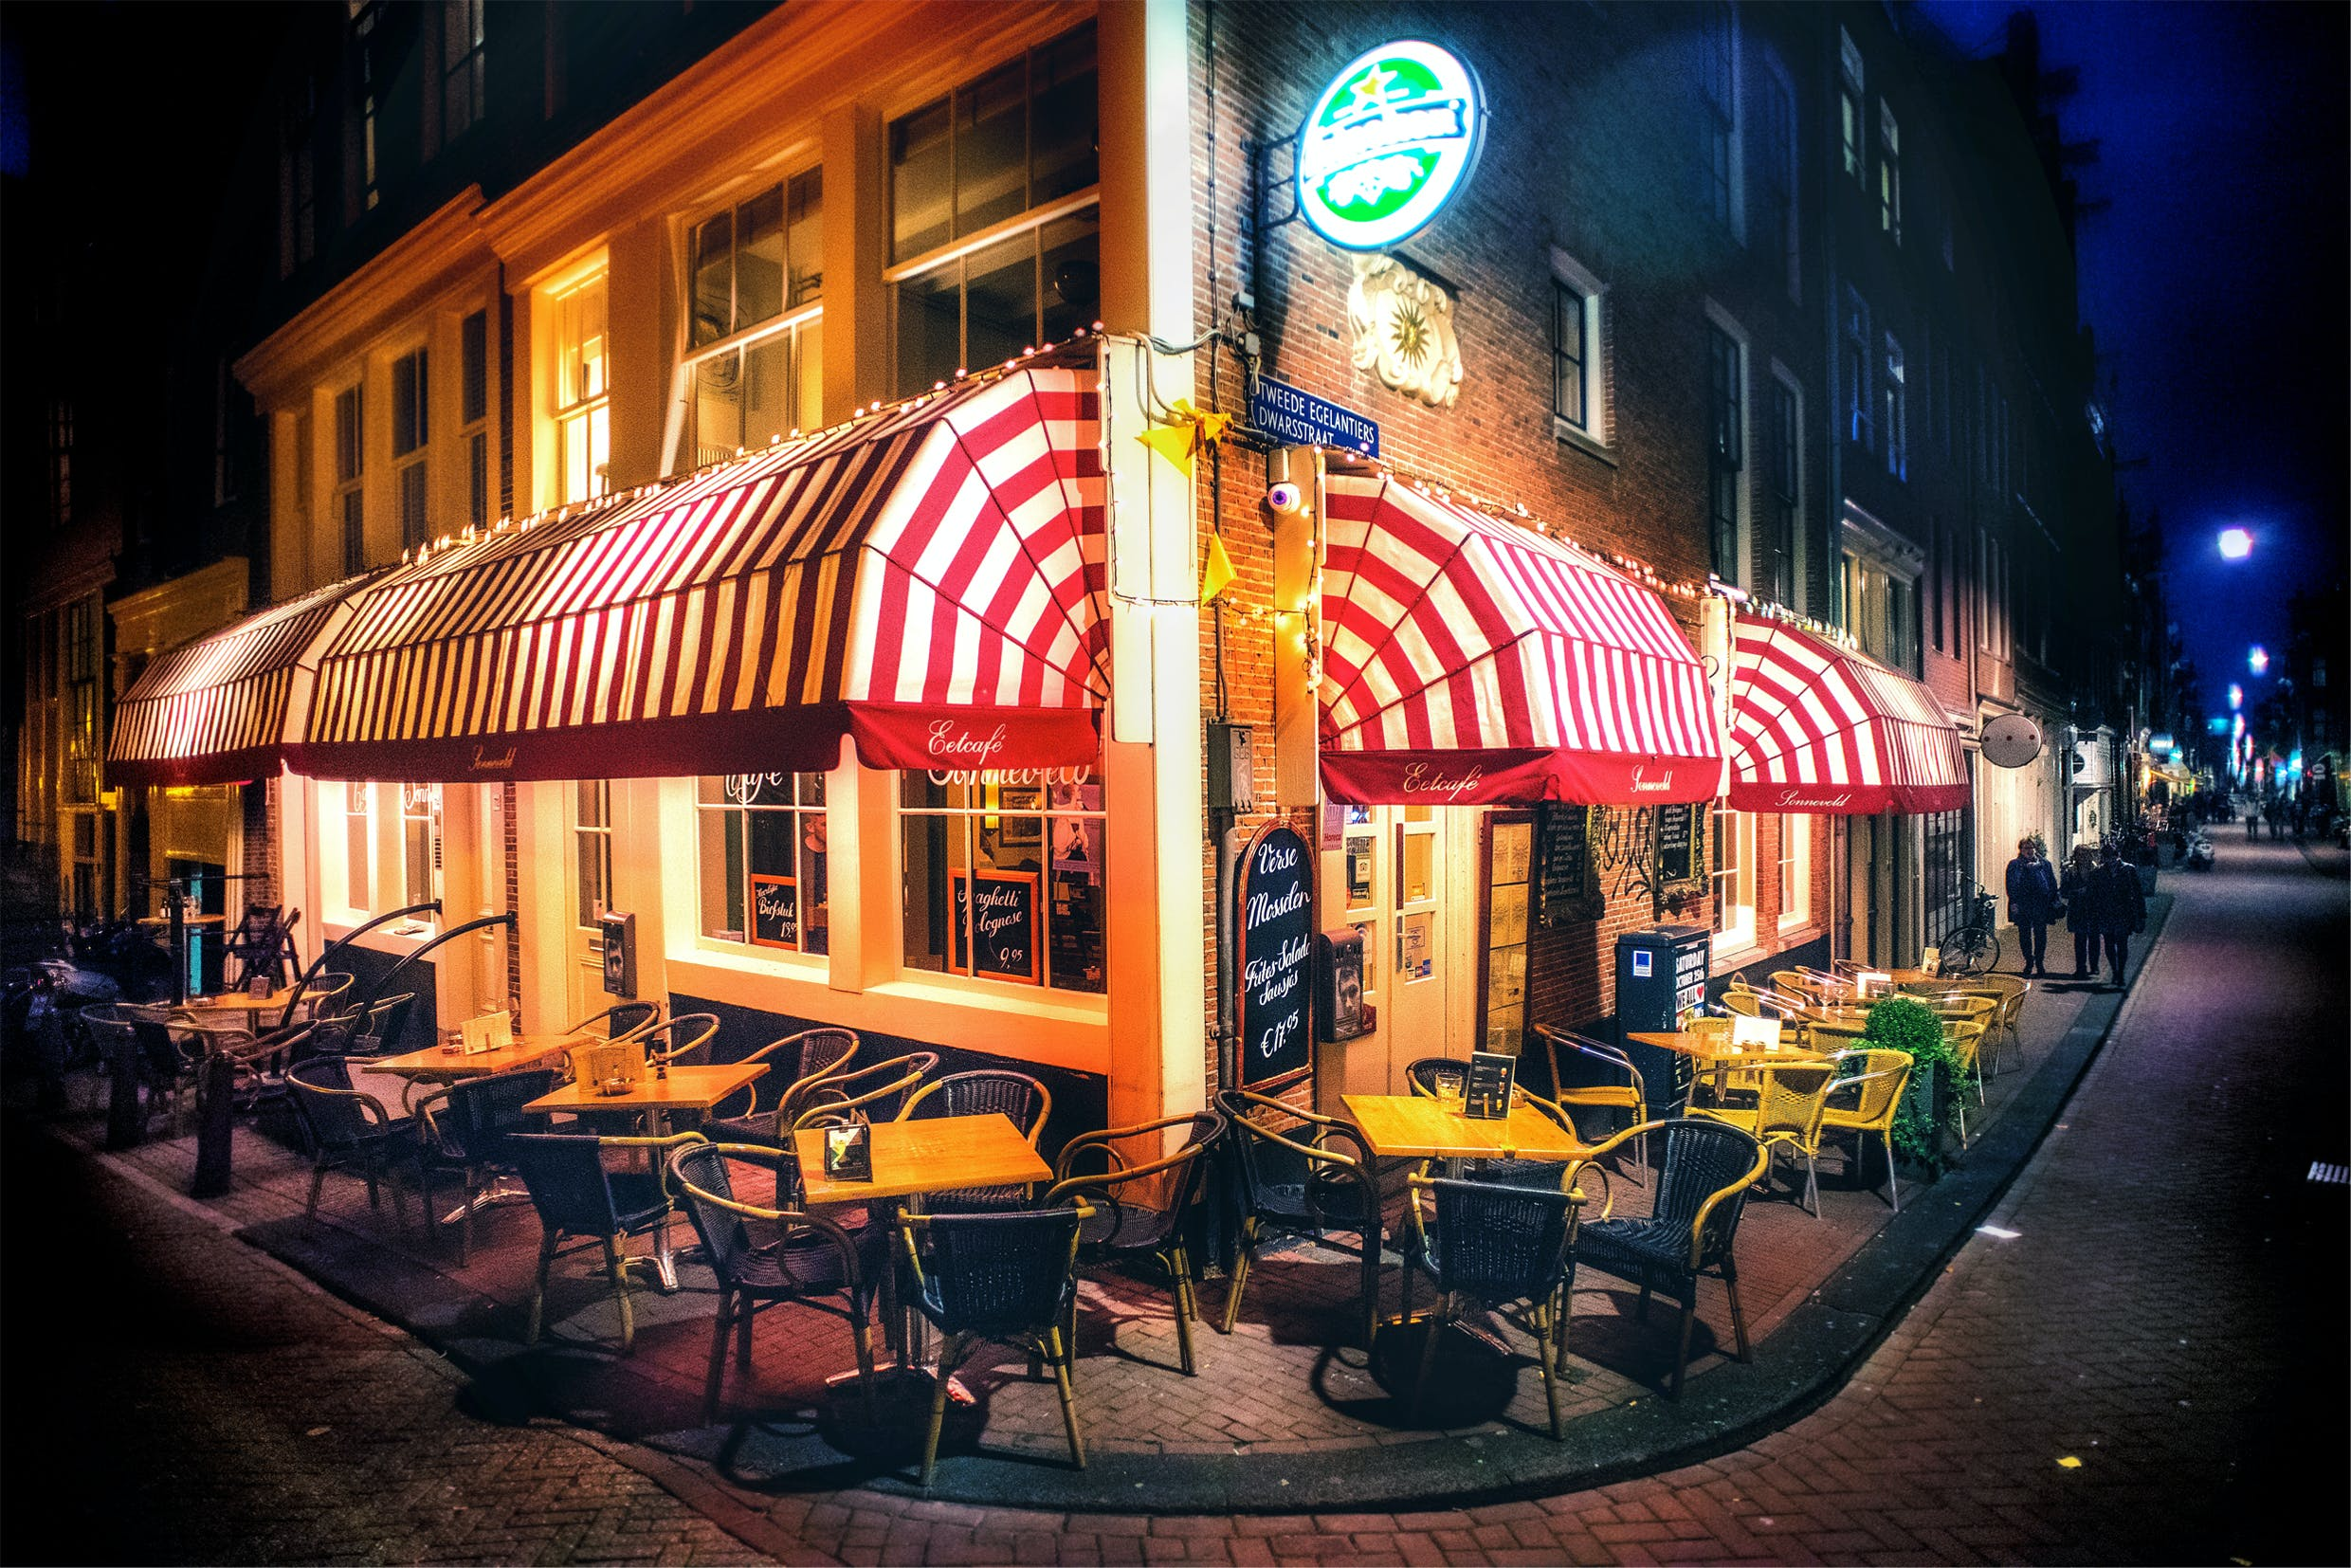 Cafe Zonneveld, one of the must see authentic places during a romantic getaway to Amsterdam